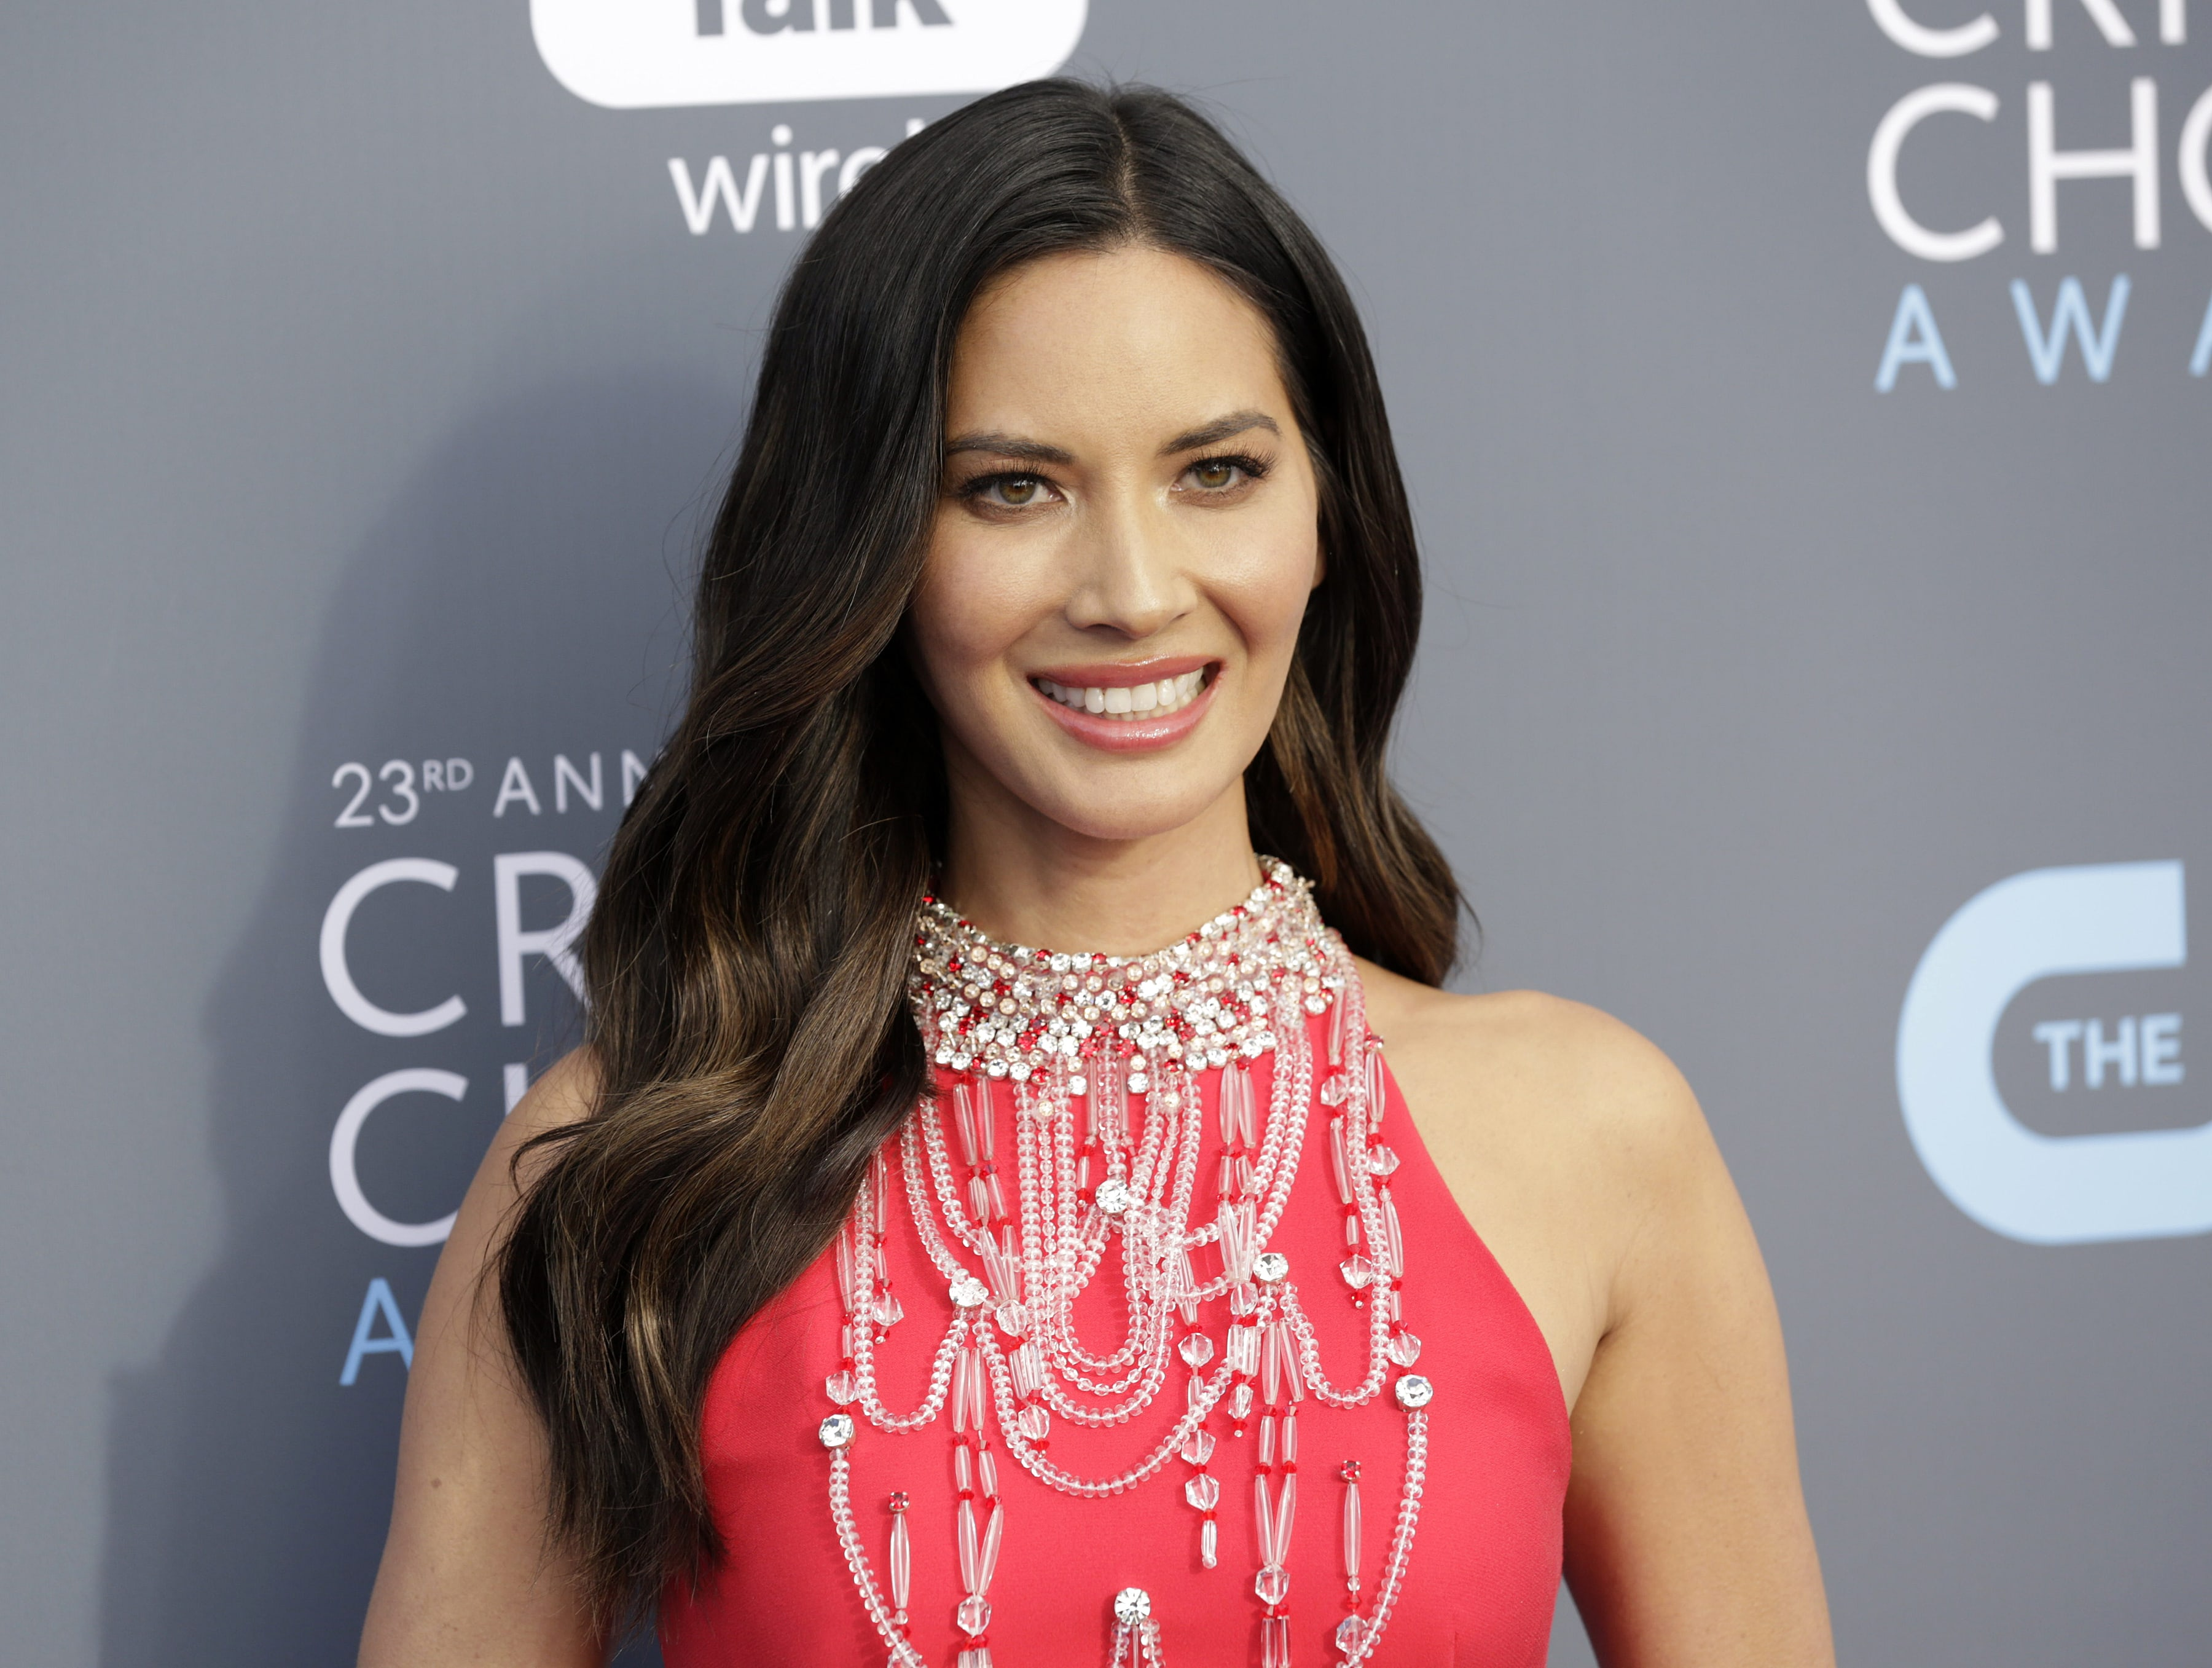 Olivia Munn has set the record straight about her relationship with Chris Pratt. (Photo: WENN)